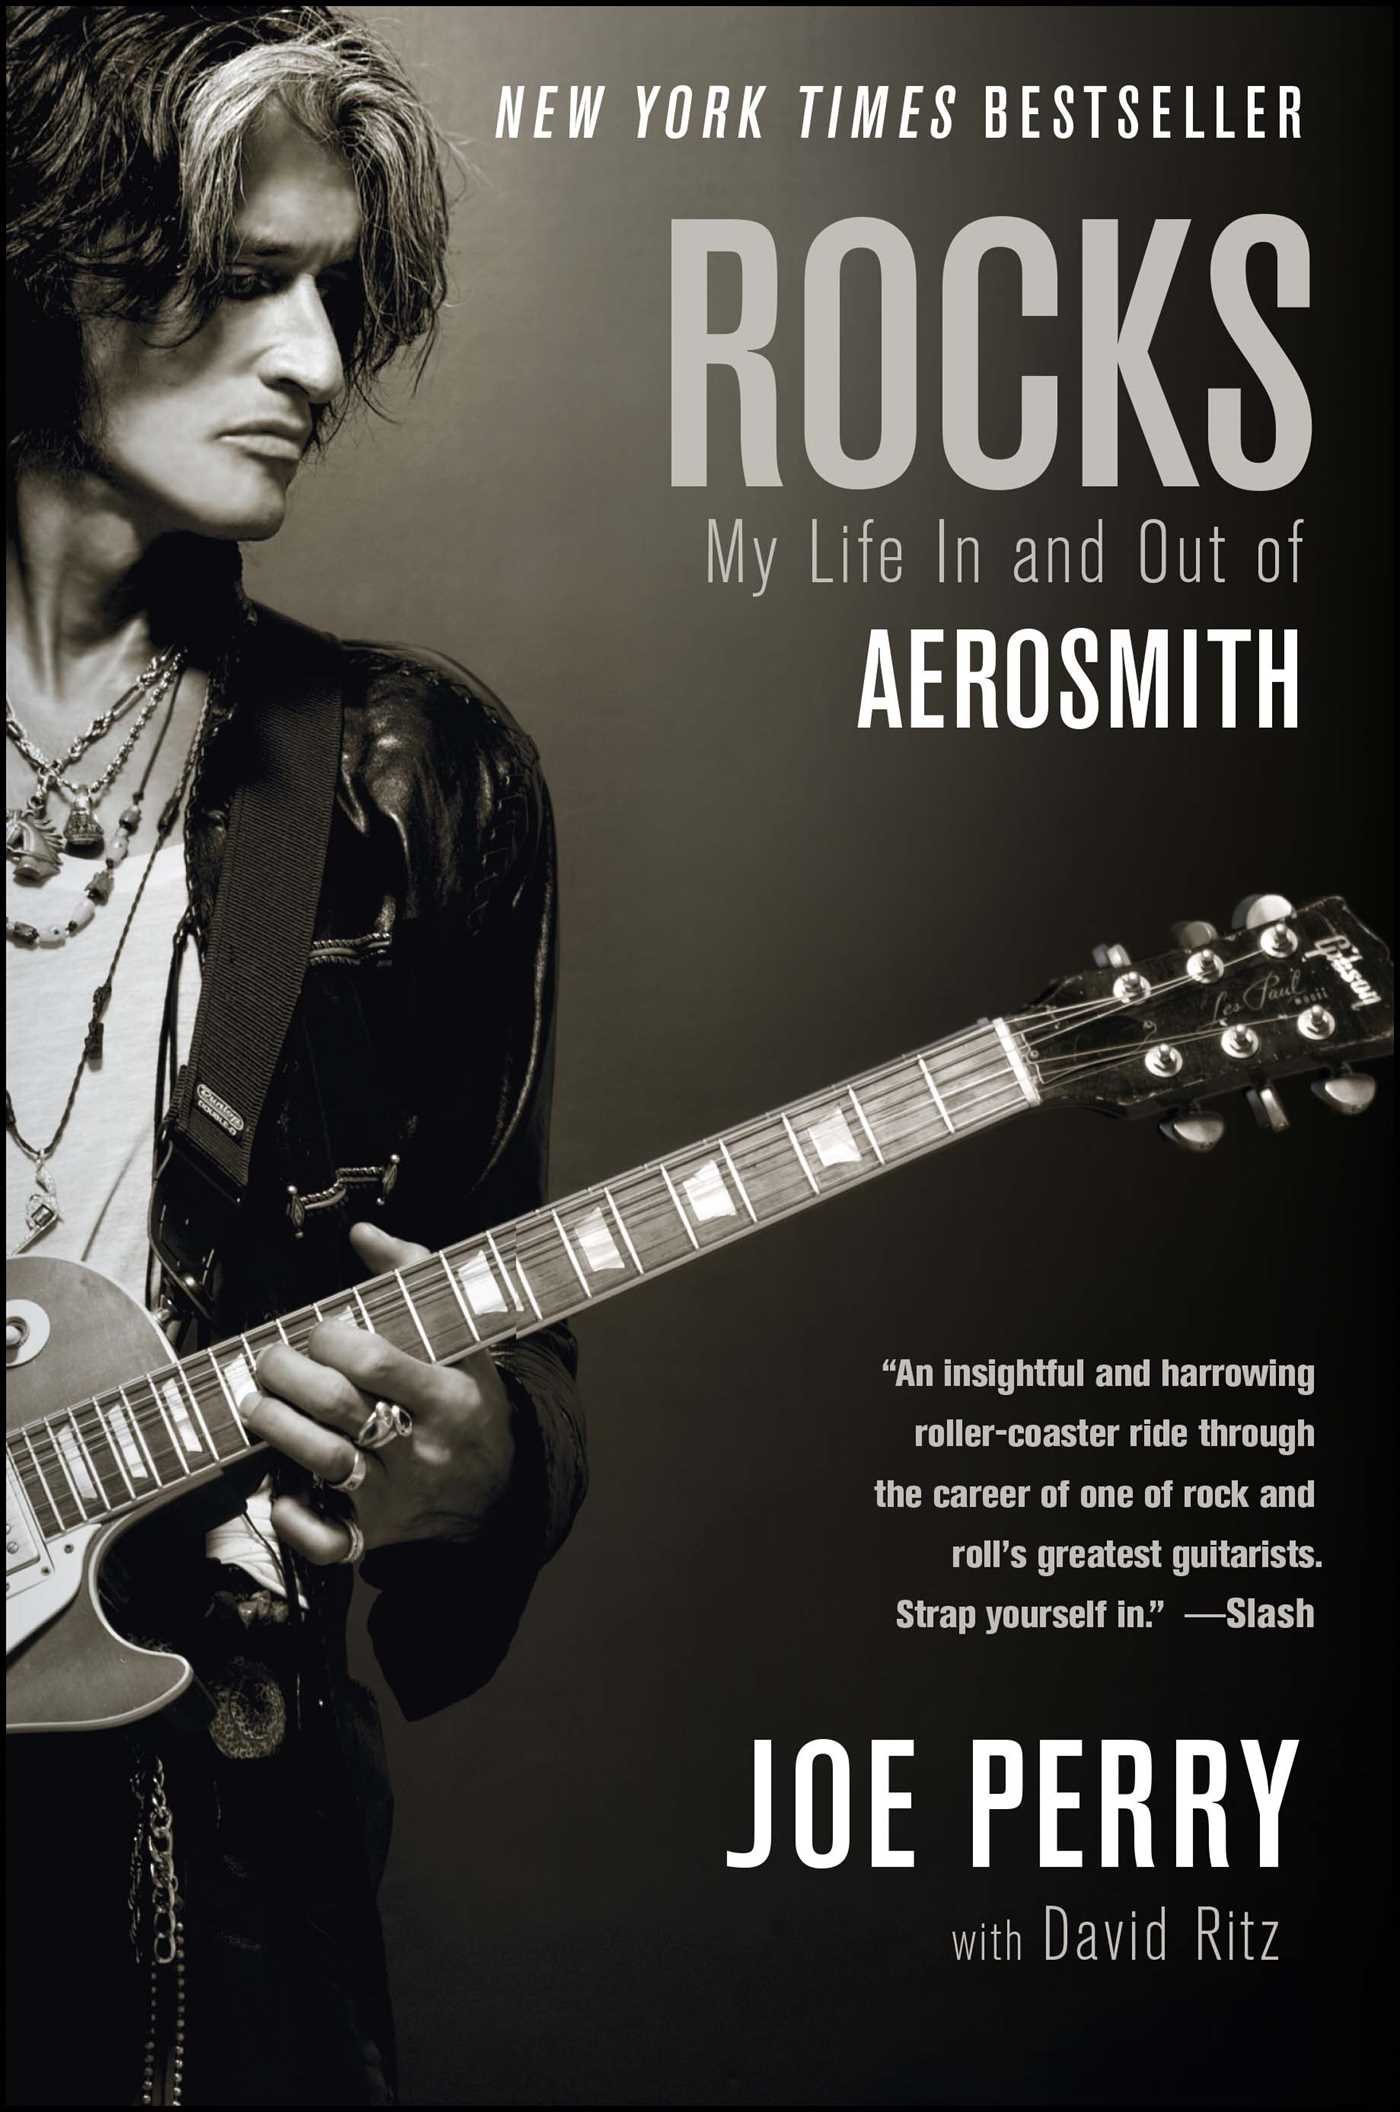 Rocks My Life In And Out Of Aerosmith Joe Perry David Ritz